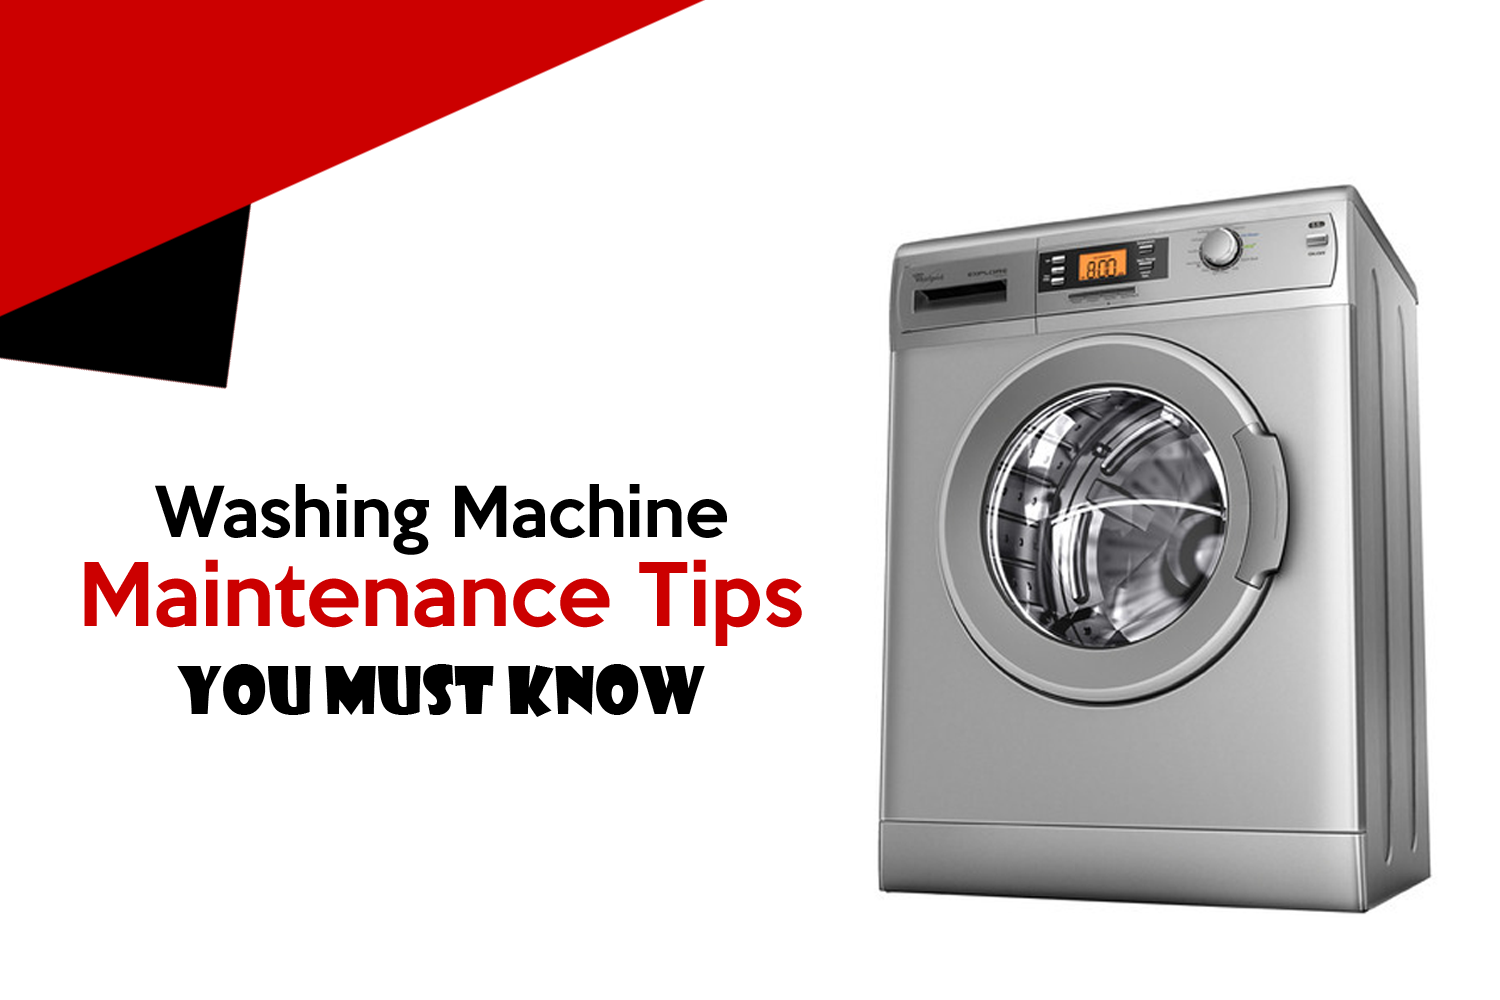 Washing Machine Maintenance Tips You Must Know Cyborg